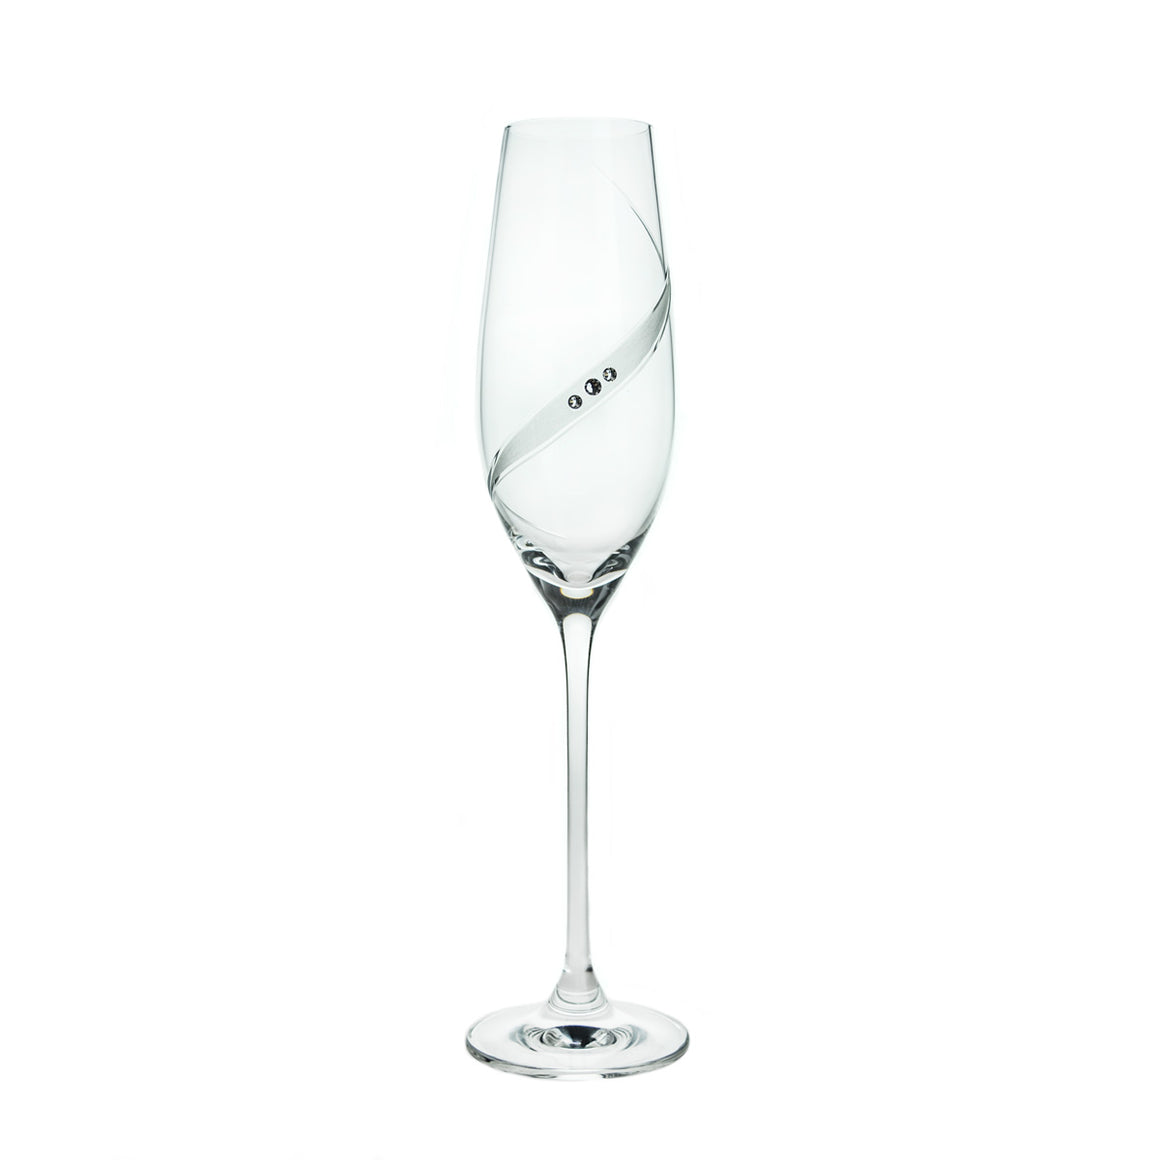 Line Exclusive Swarovski Crystals Champagne Glasses, Pair - The Crystal Wonderland